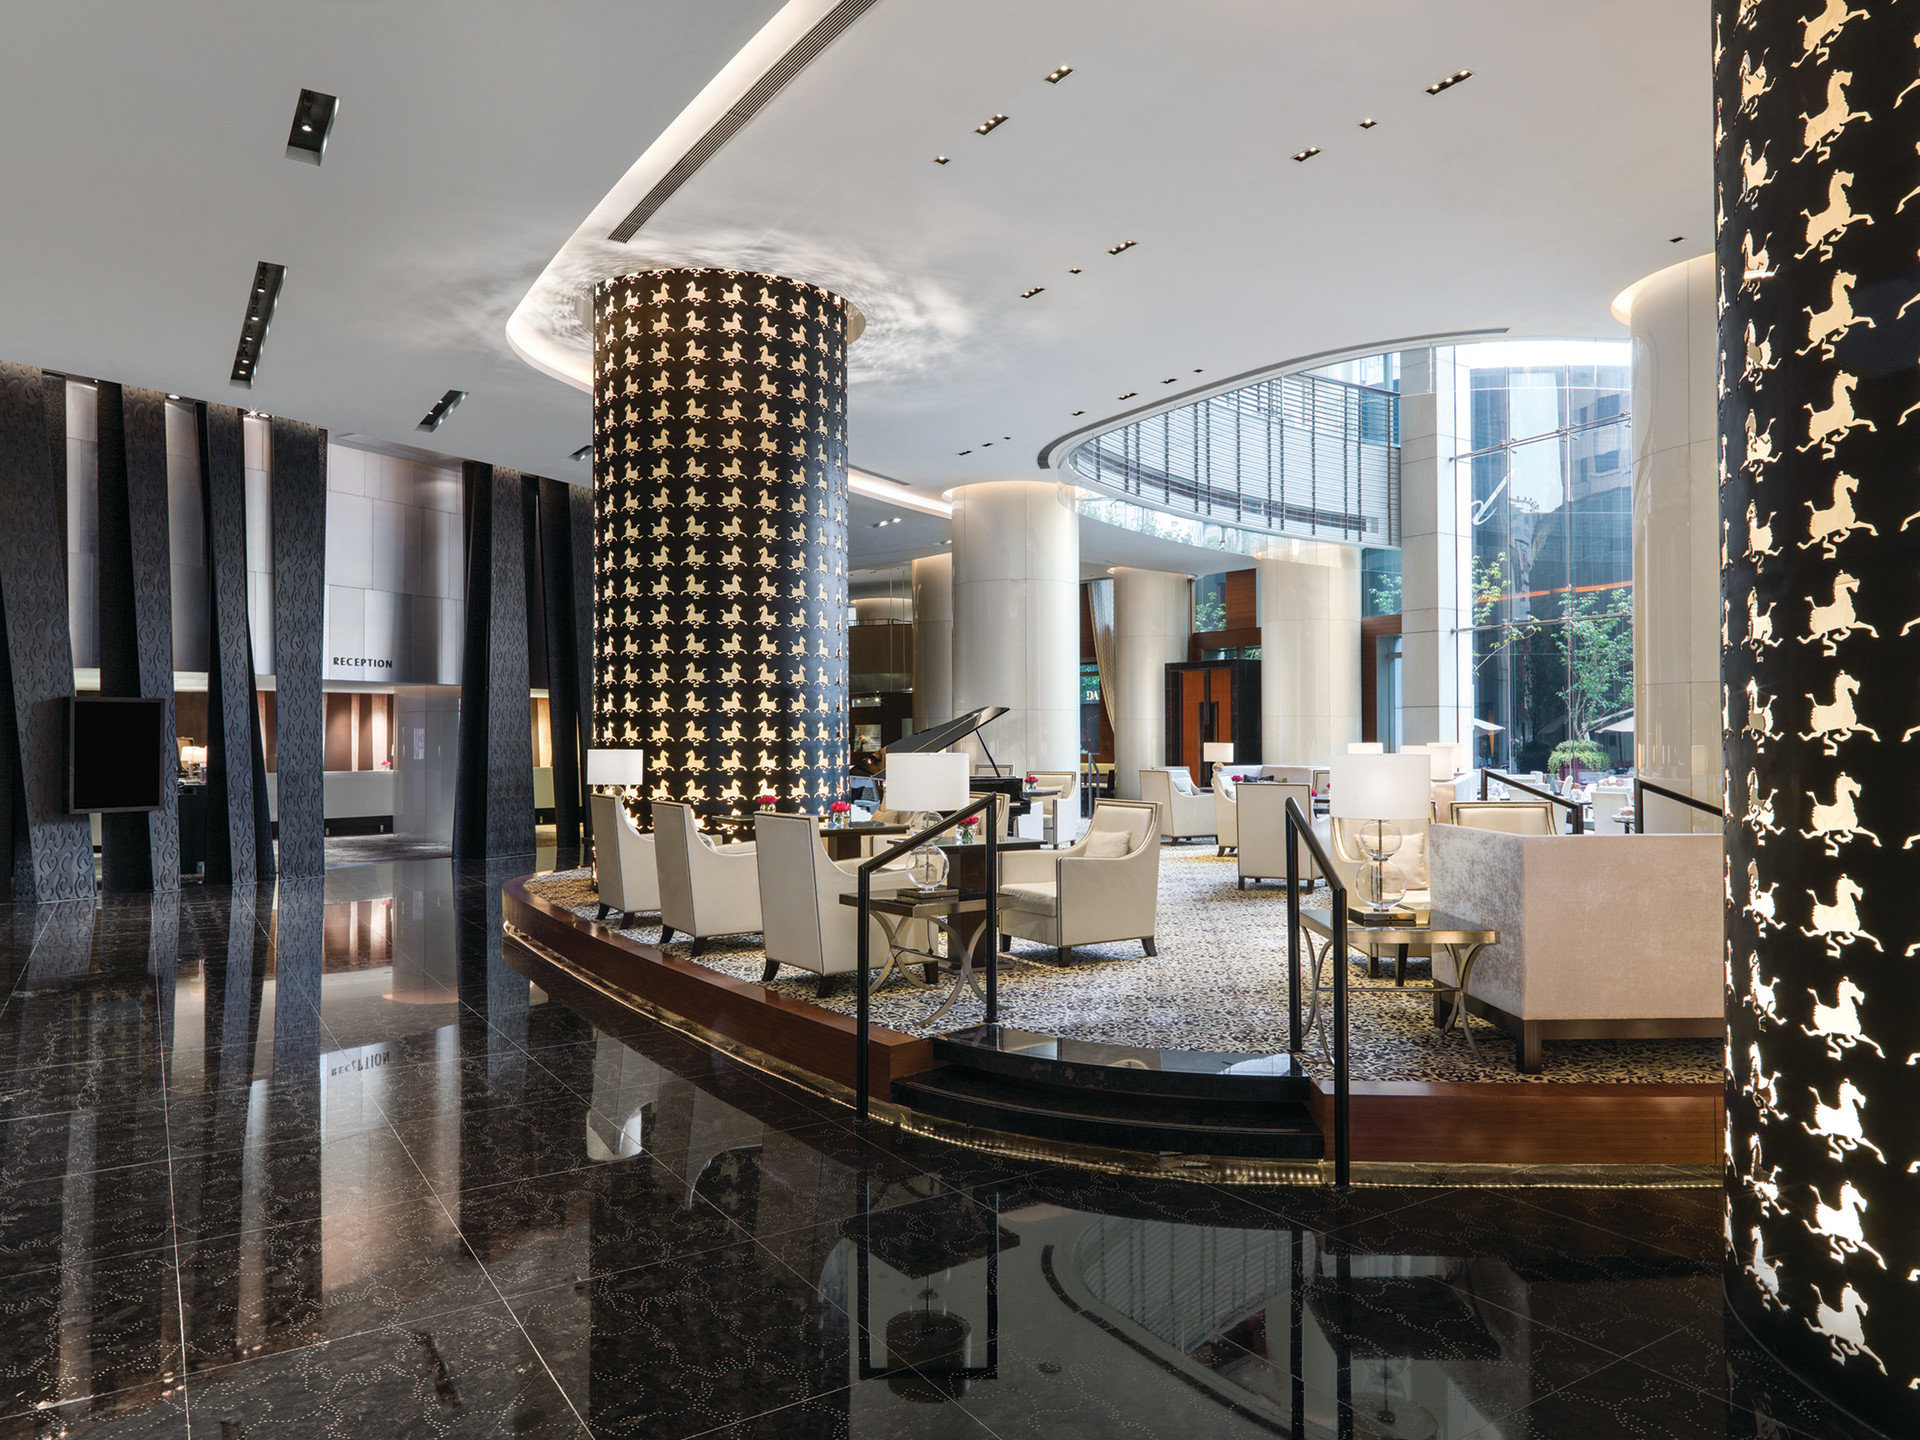 Boutique Hotels Luxury Travel Lobby Architecture interior design estate lighting condominium Design tourist attraction convention center